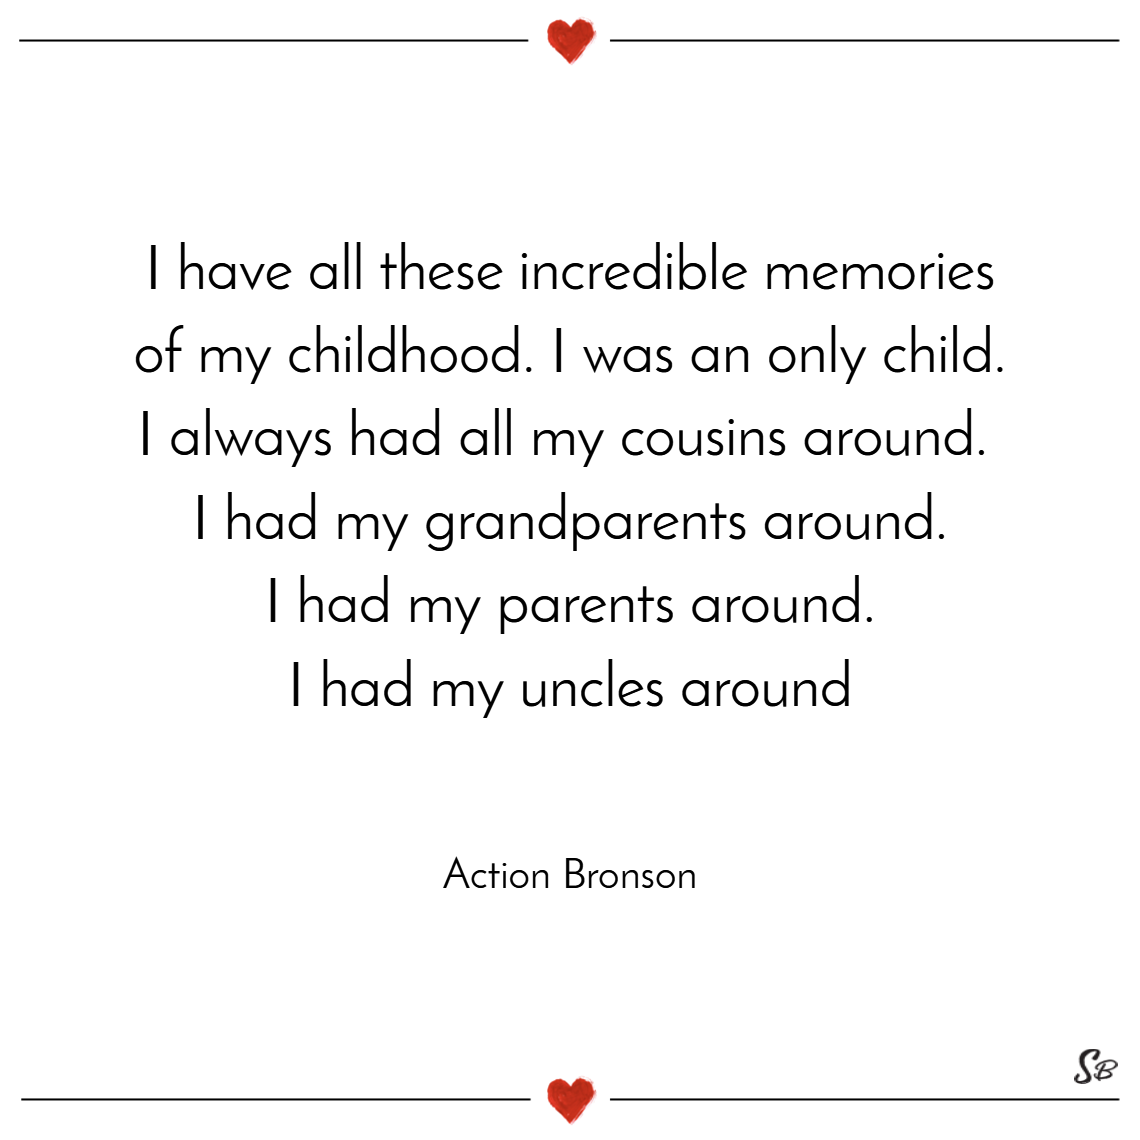 I have all these incredible memories of my childhood.